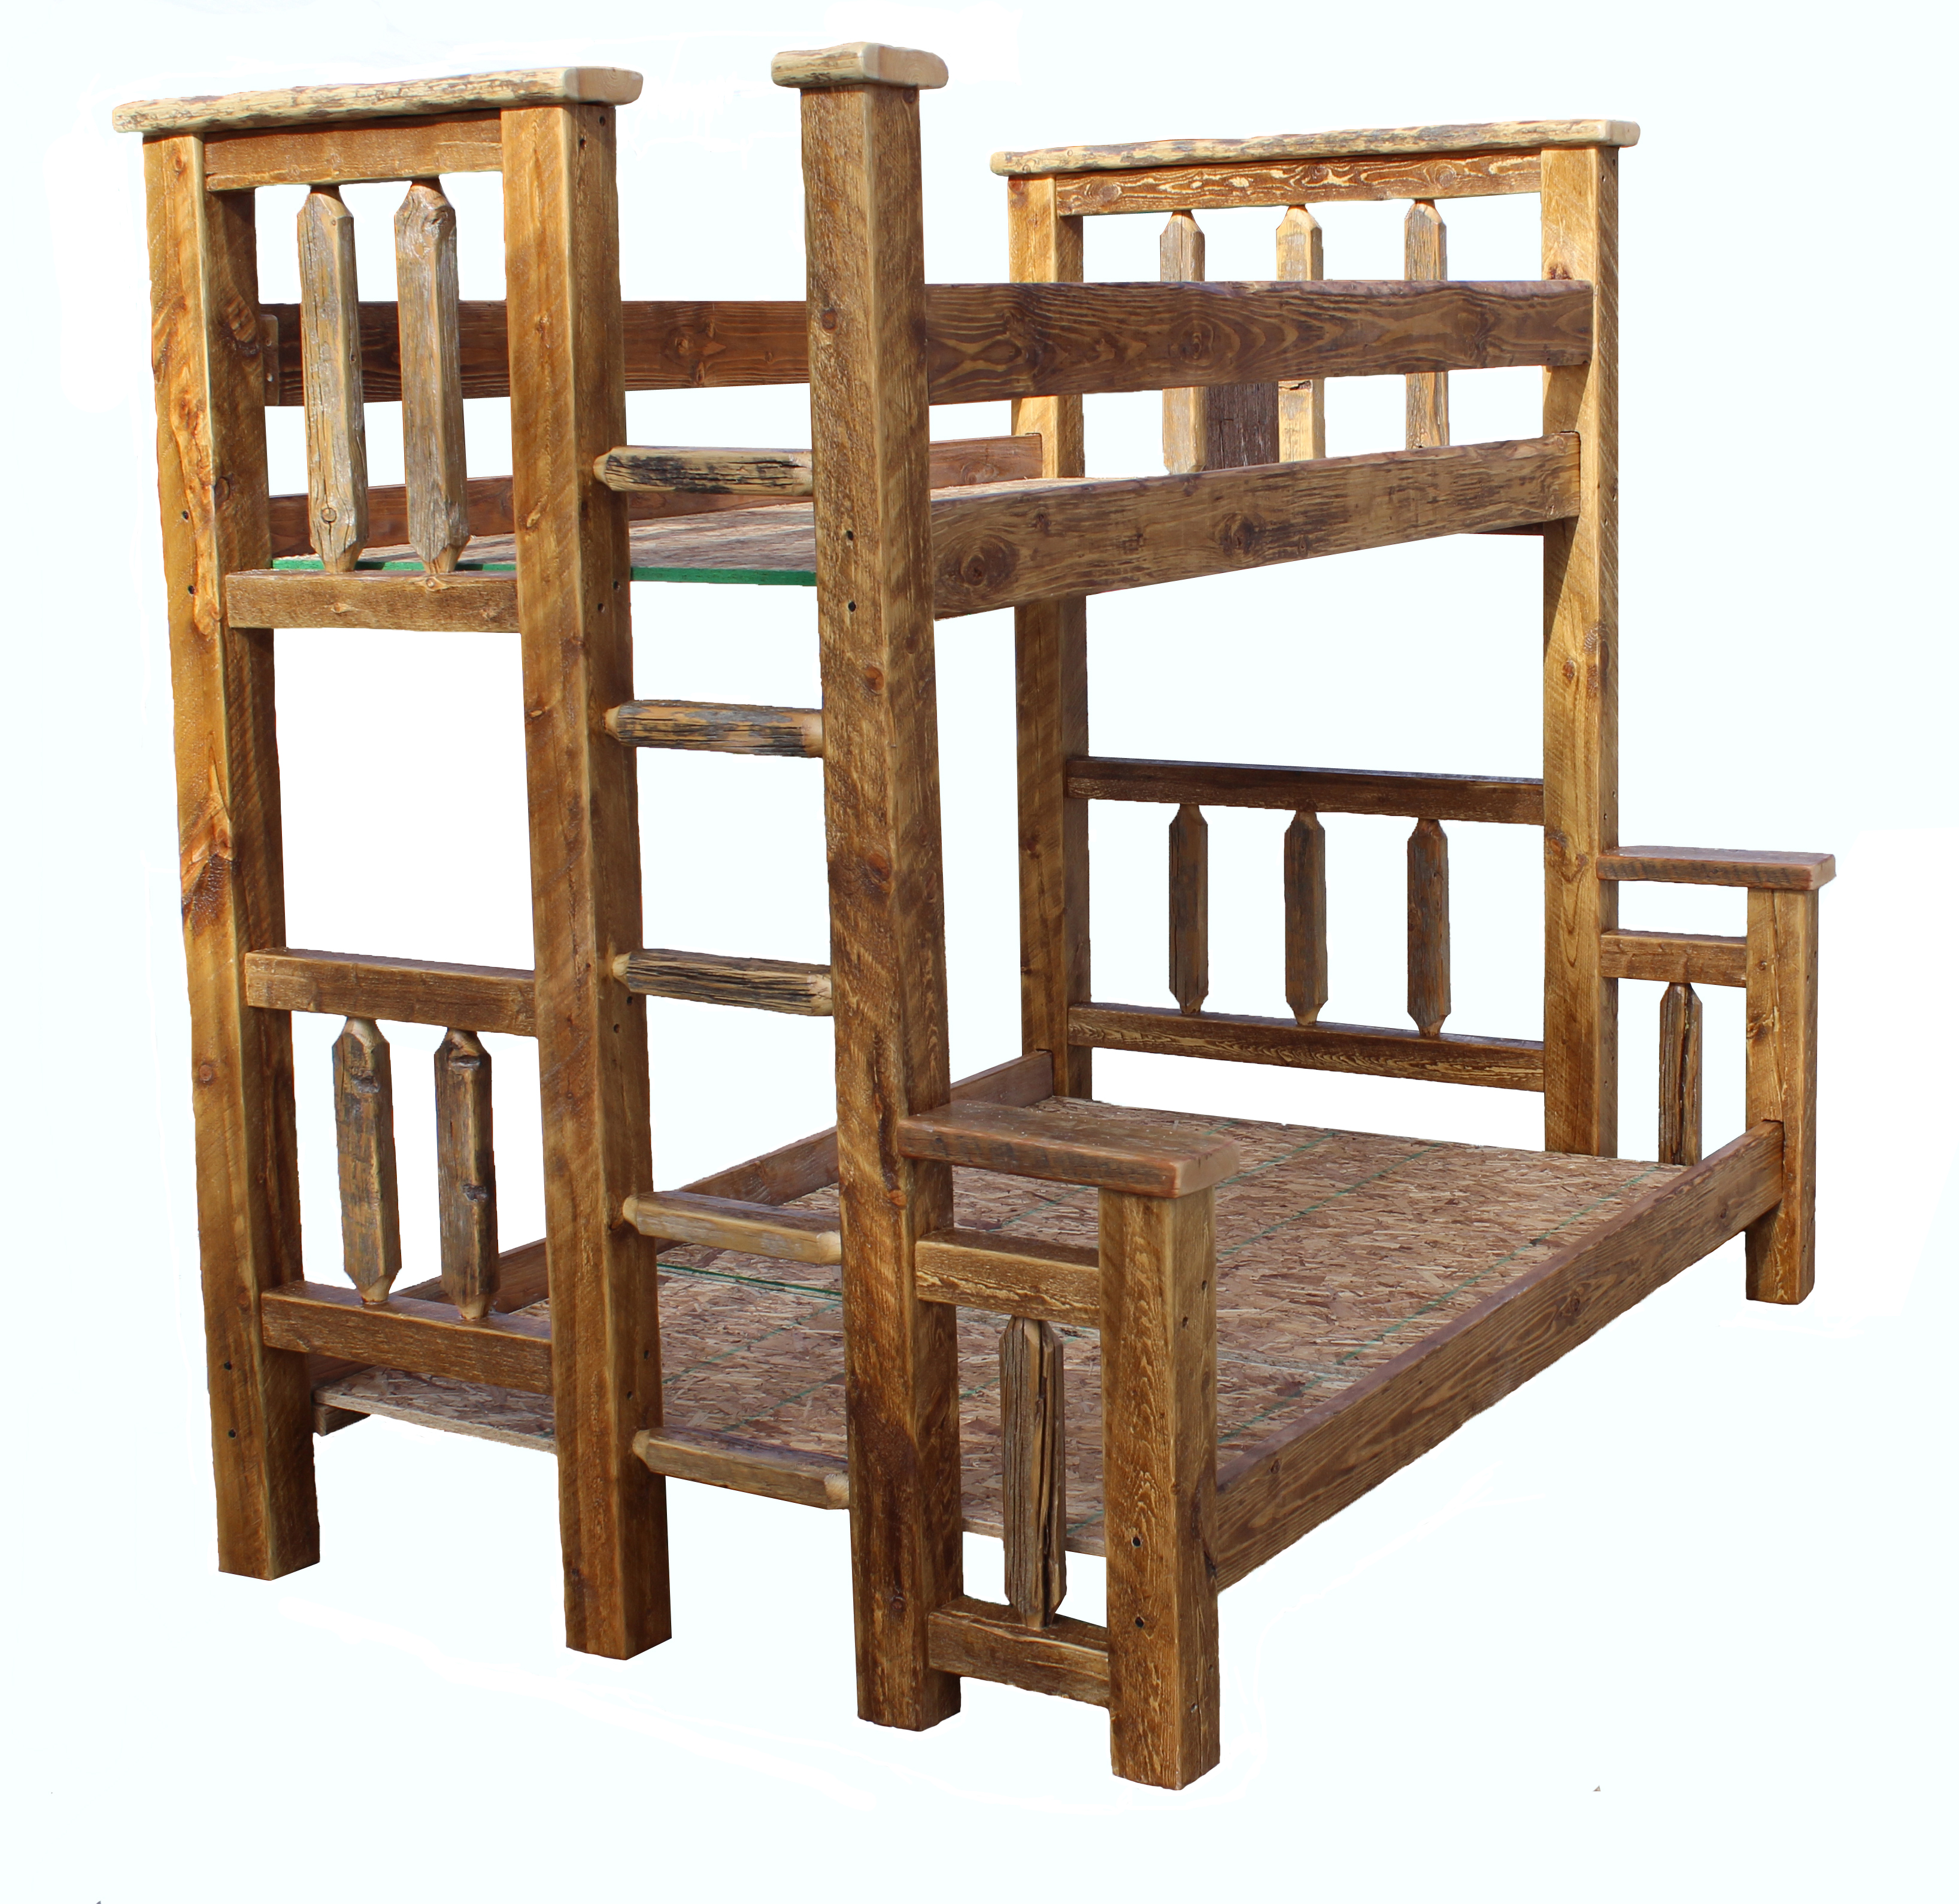 Rustic Twin Over Full Bunk Bed 3272 x 3180